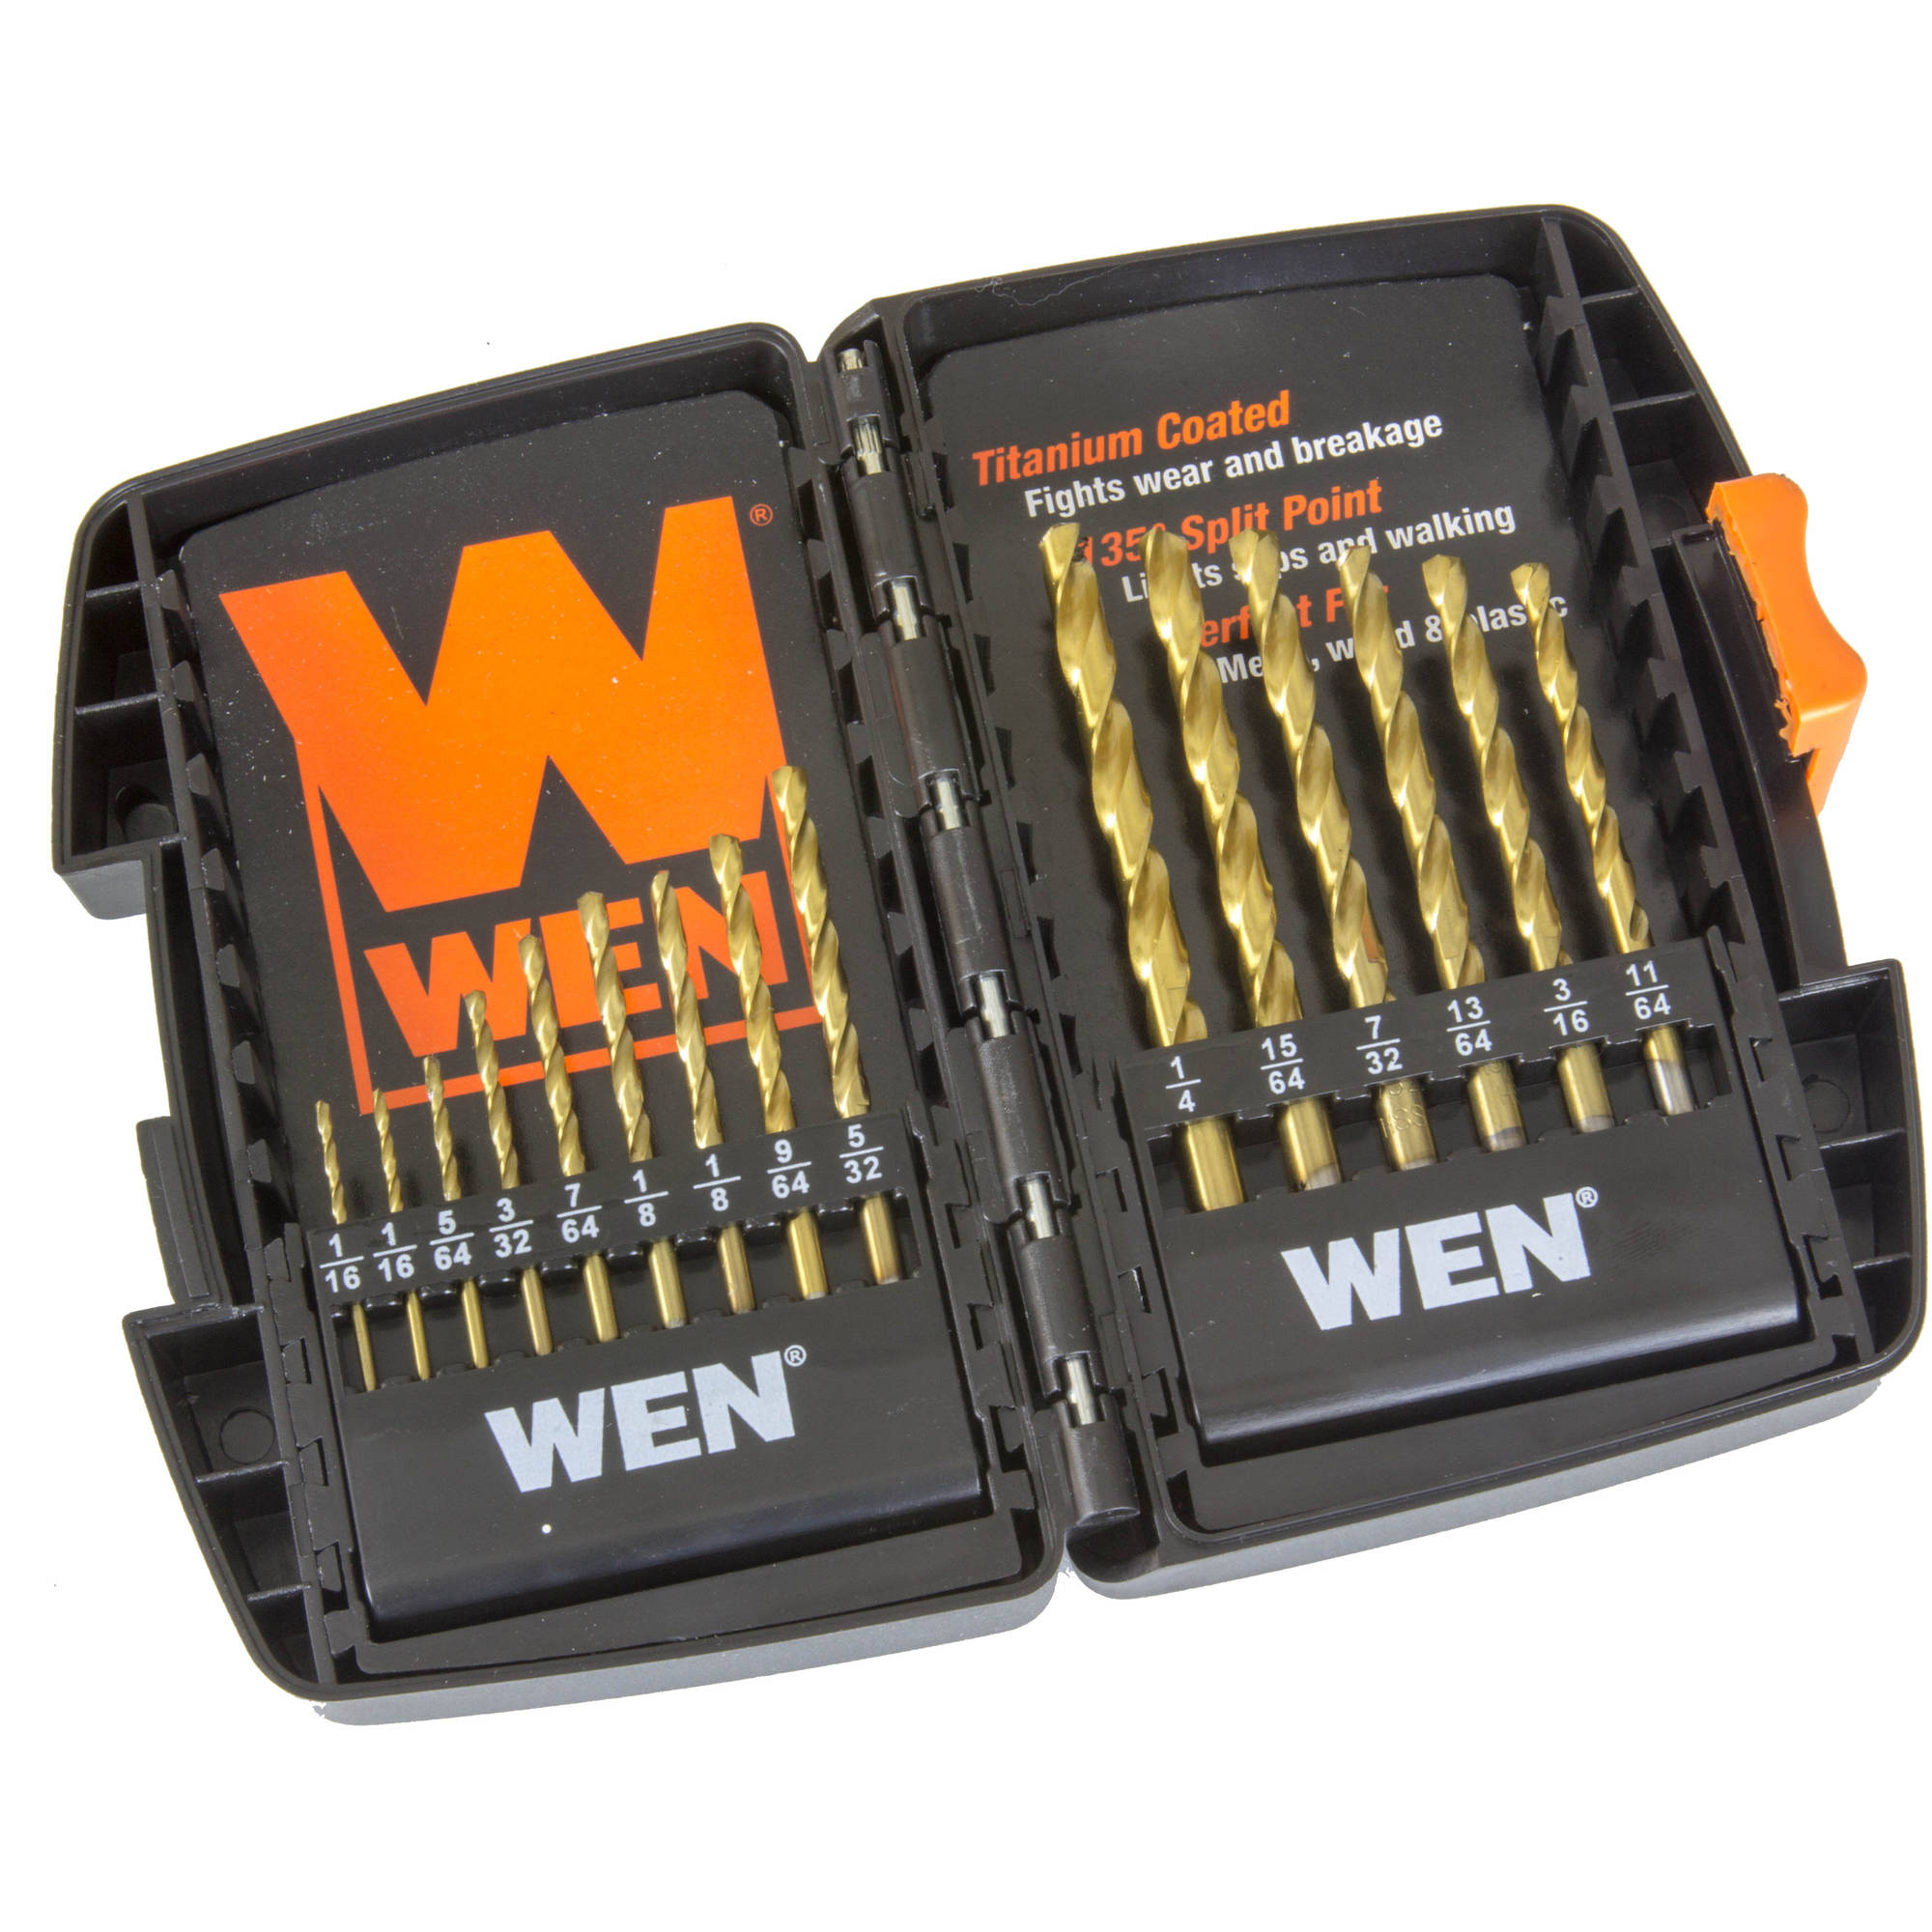 WEN 15-Piece Titanium-Coated Drill Bit Set